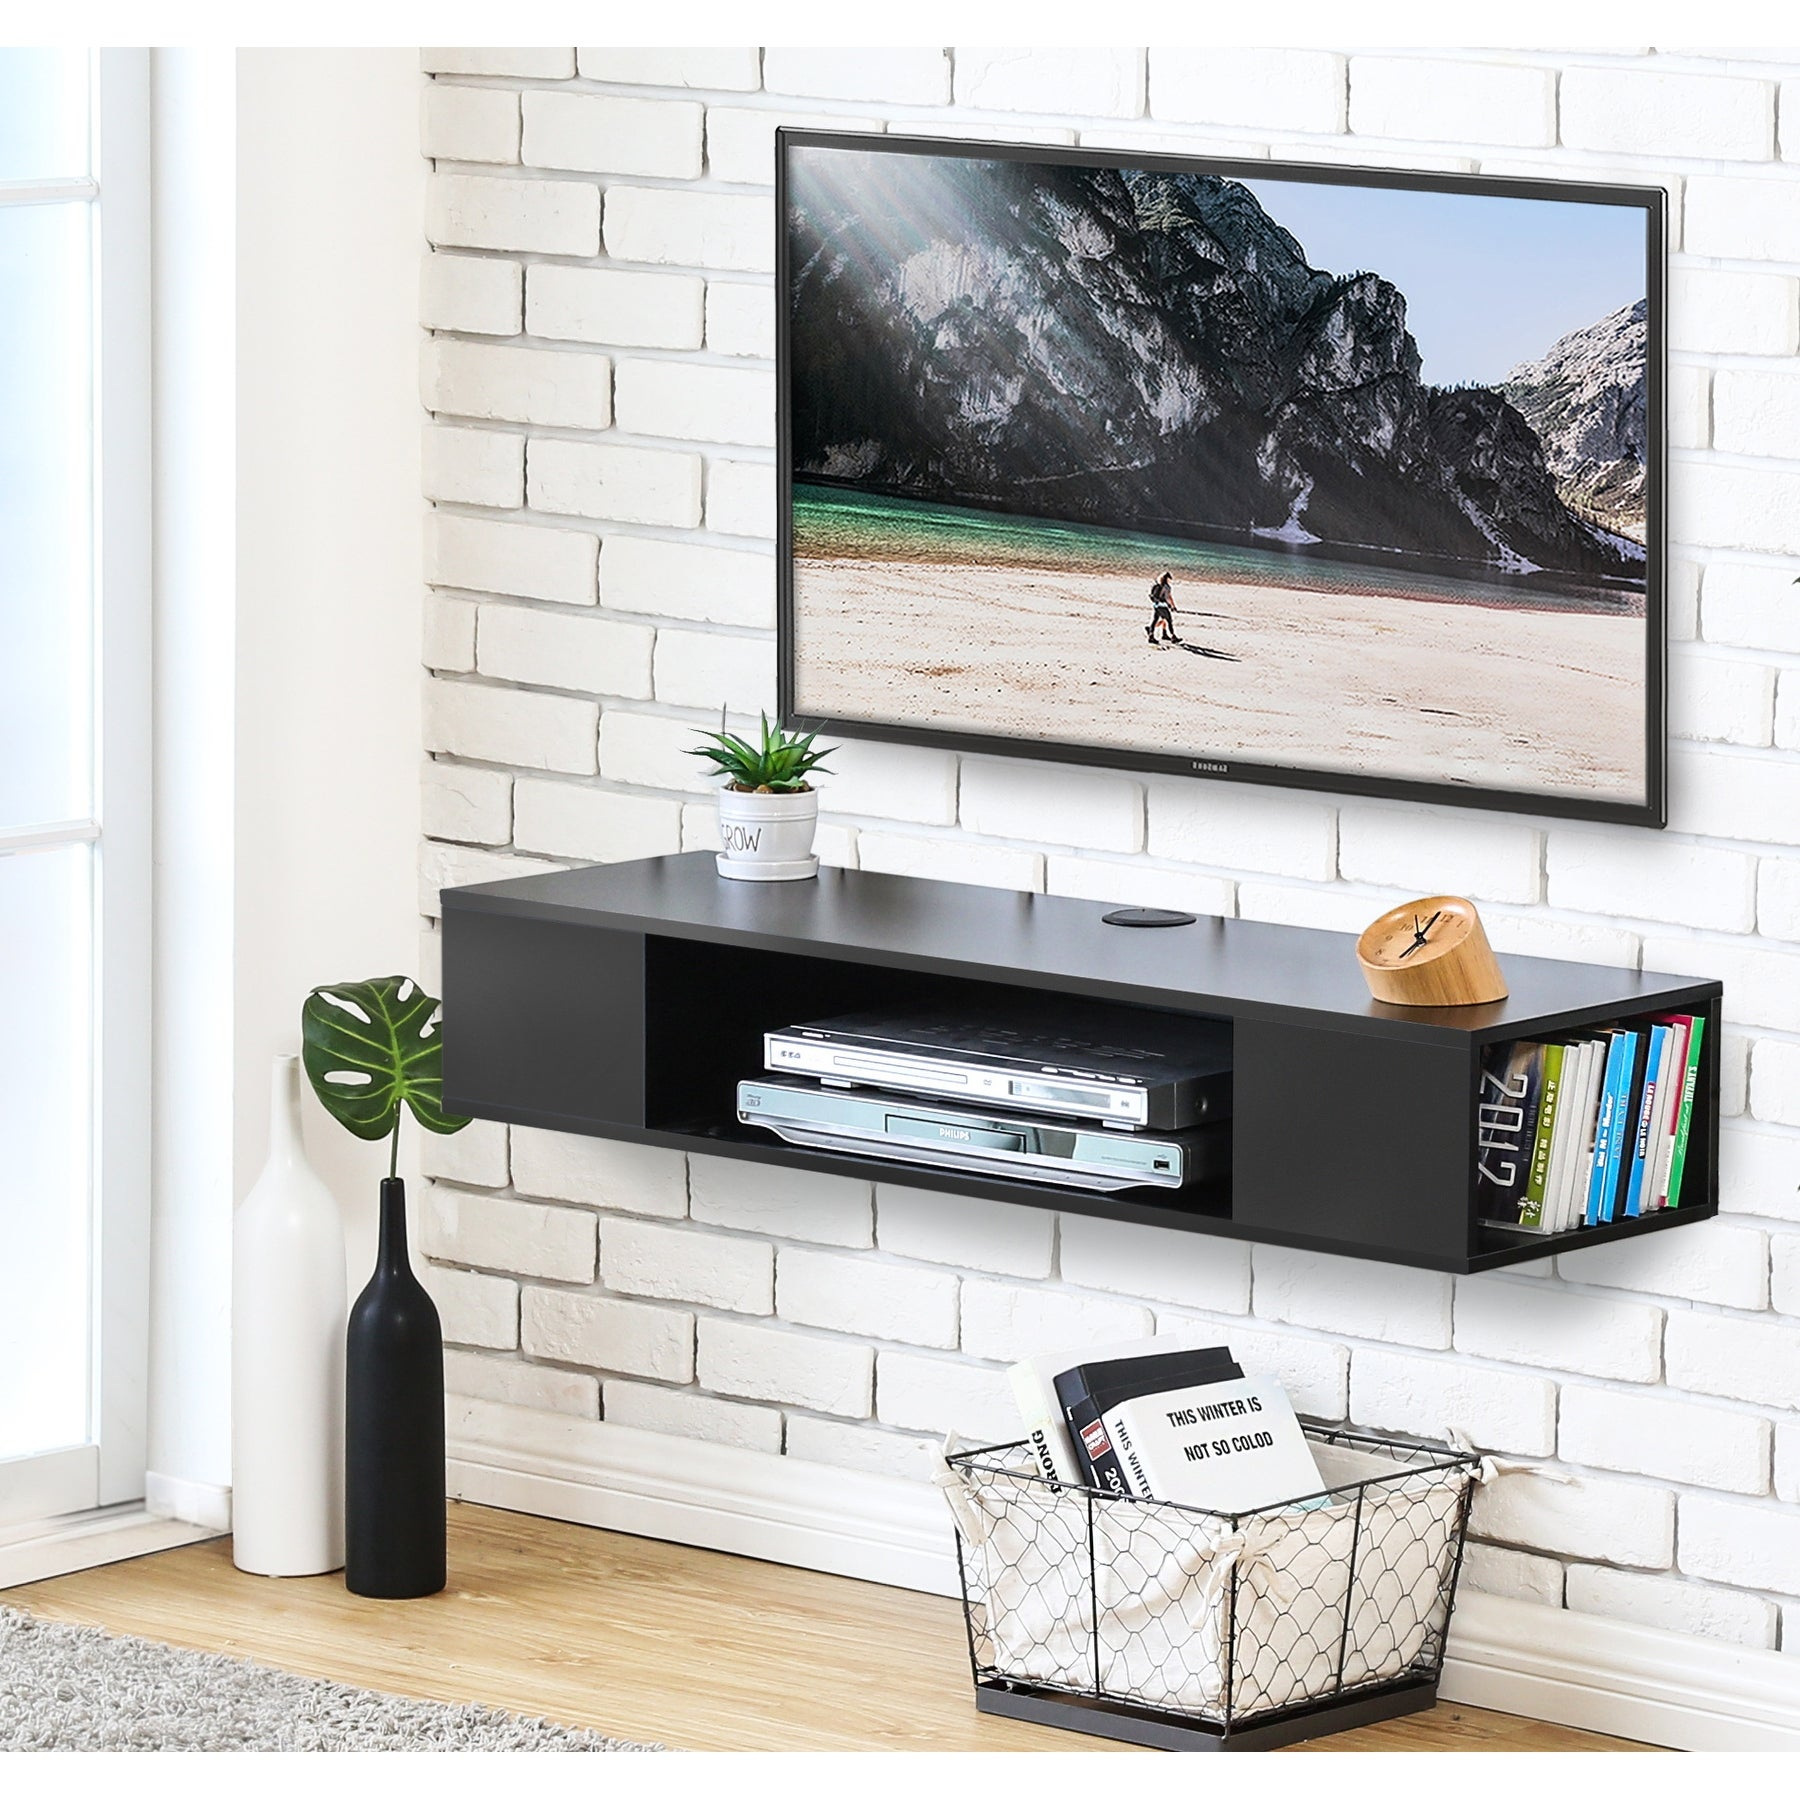 Floating Tv Stand Wood Wall Mount 2 Tier Media Shelves For Flat Screen Tv 40 Home Garden Furniture Home Garden